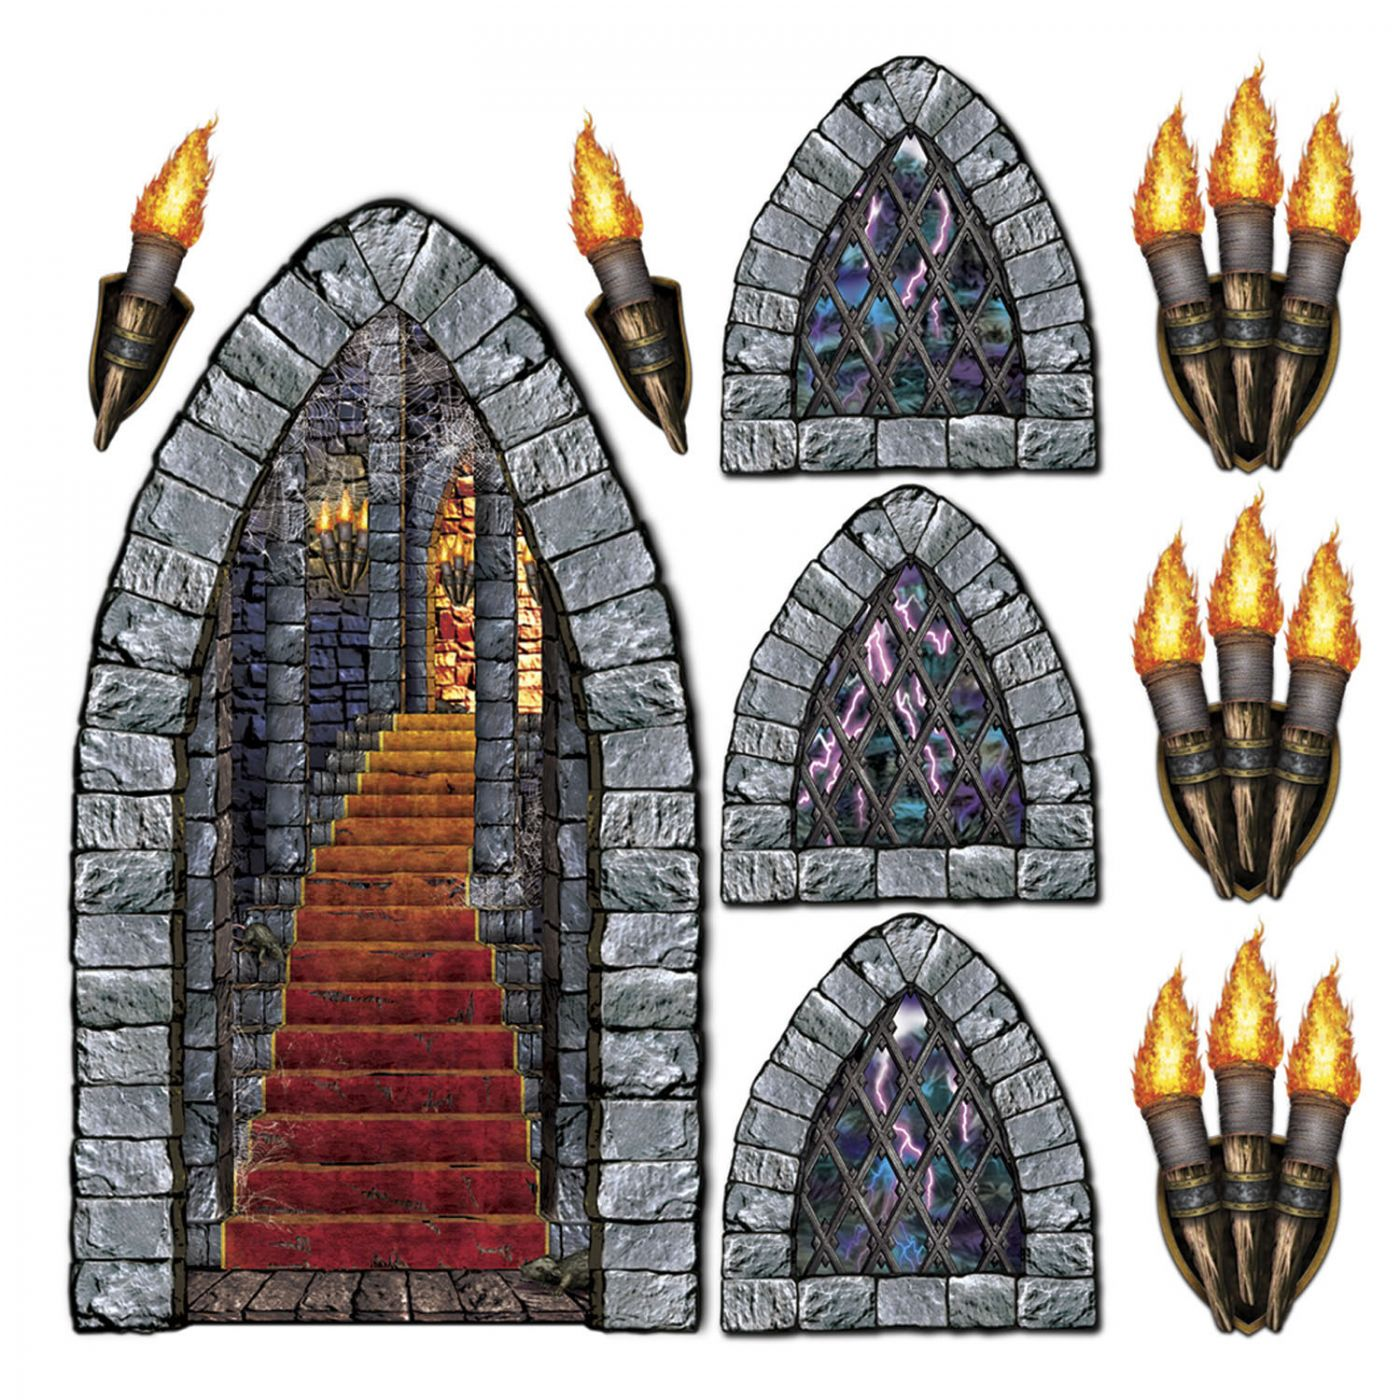 Stairway, Window & Torch Props image